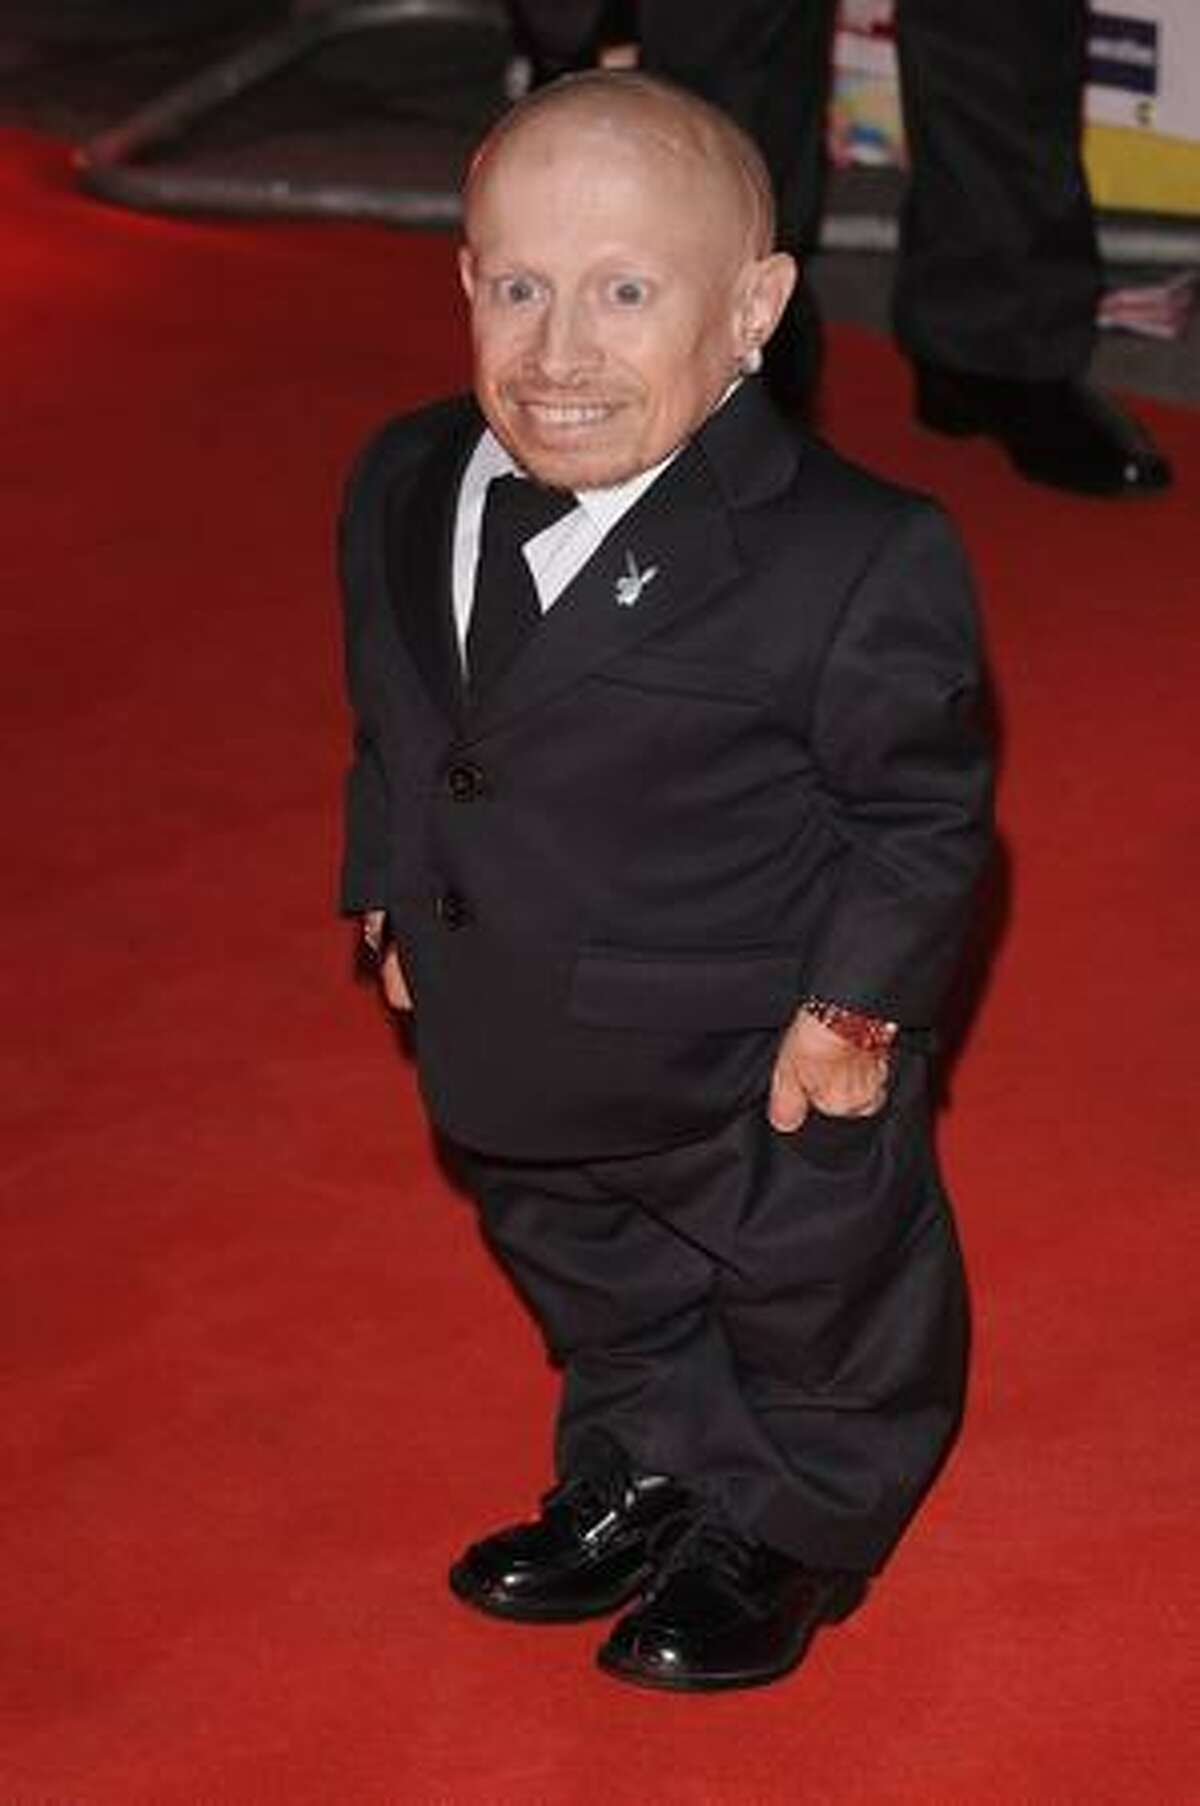 Verne Troyer attends the Pride of Britain Awards at the Grosvenor House Hotel on Monday in London, England.